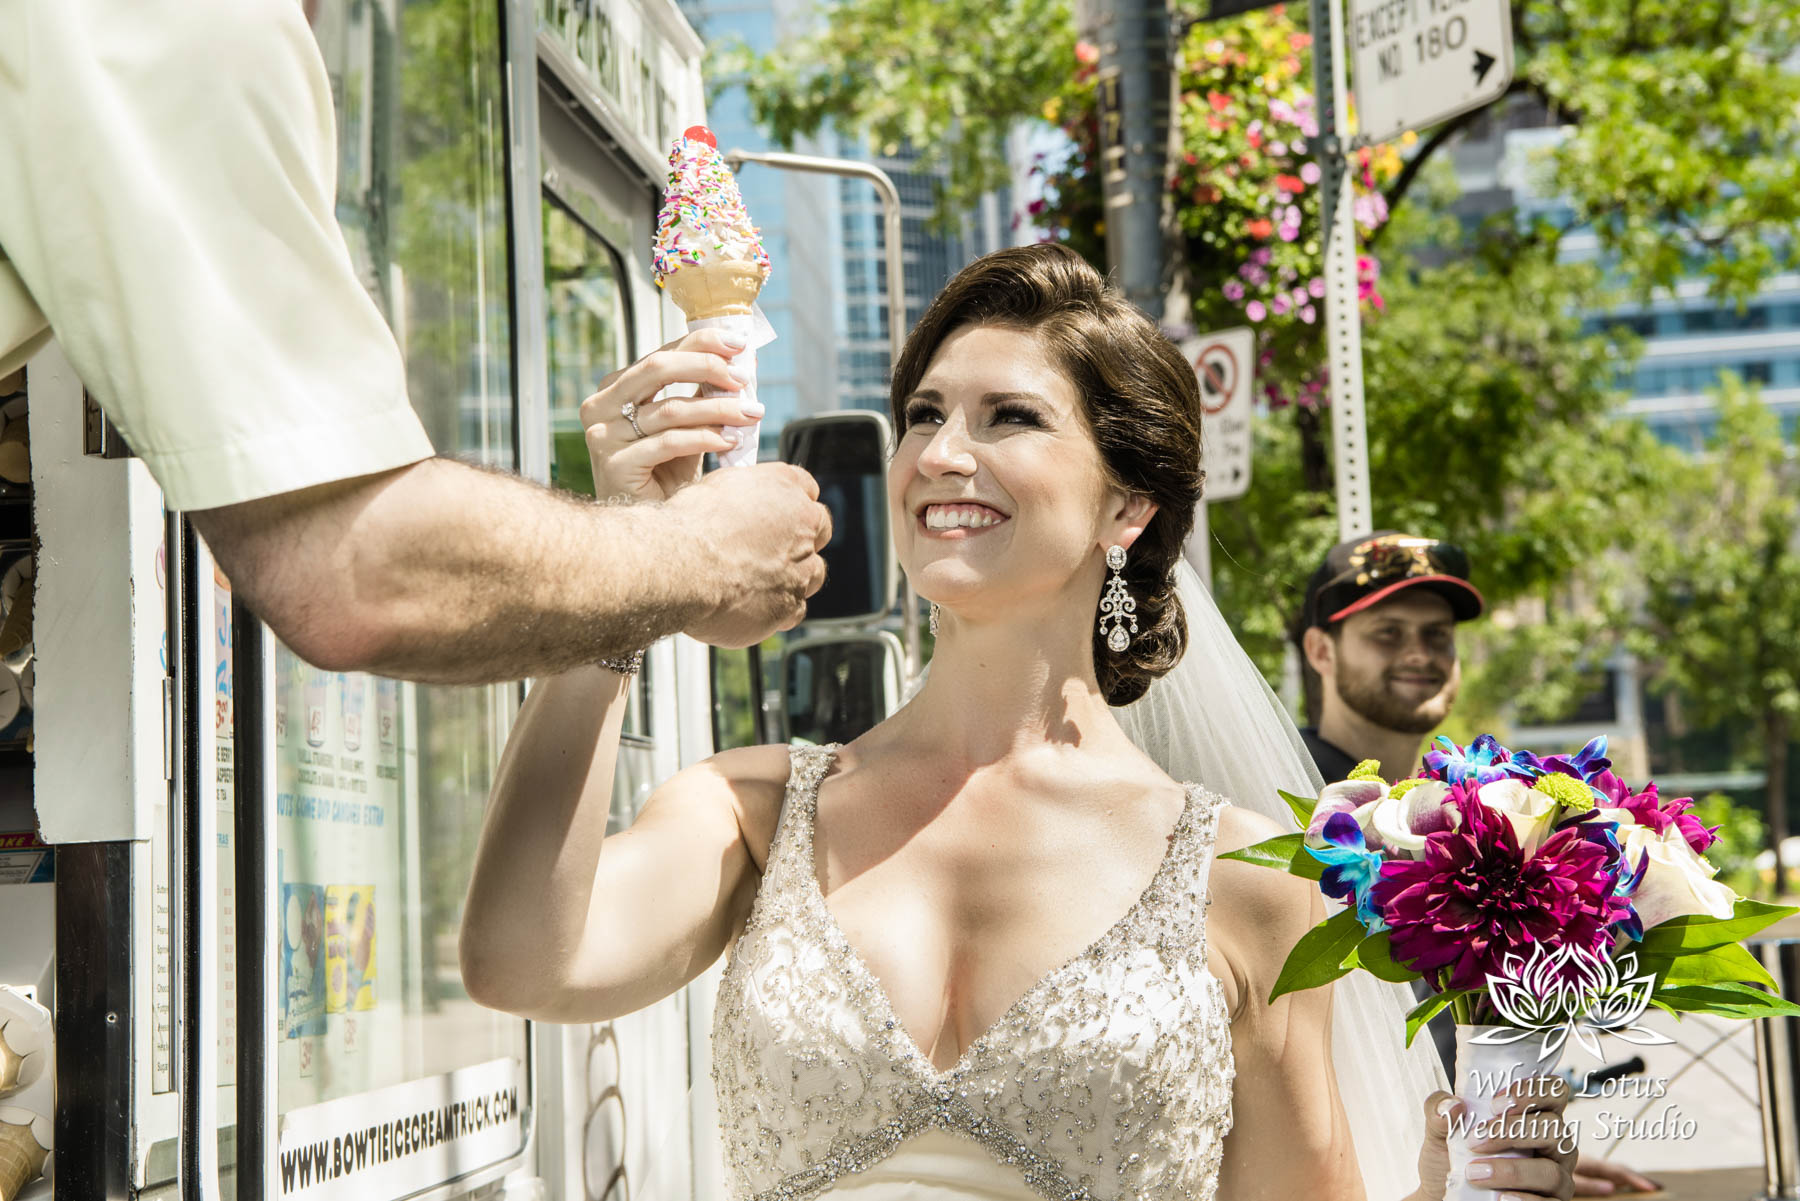 077 - Wedding - Toronto - Downtown wedding photo-walk - PW